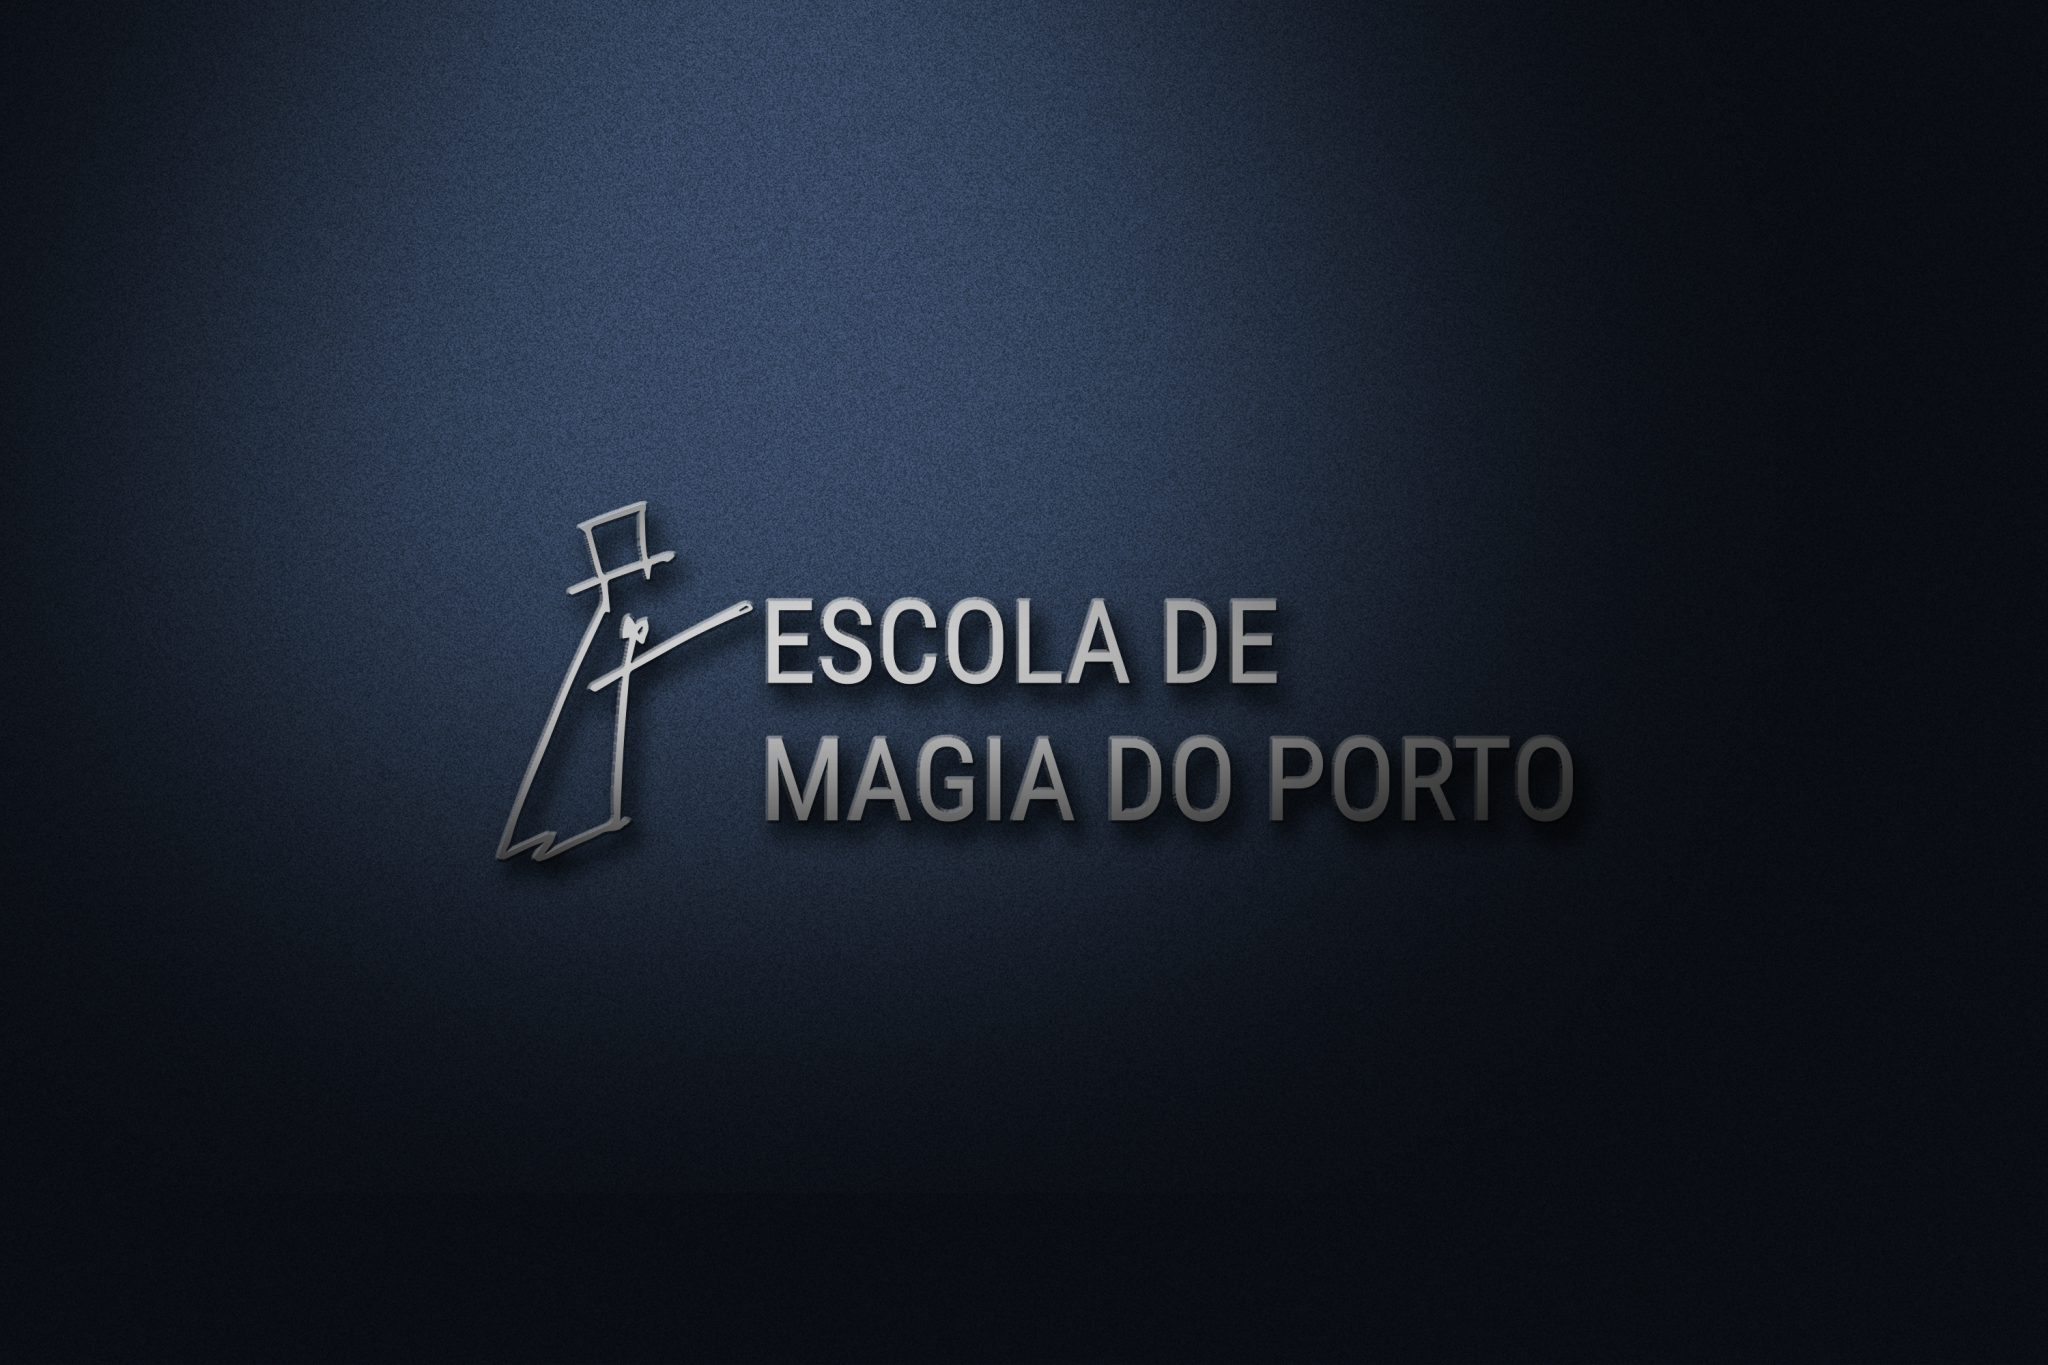 Escola de Magia do Porto